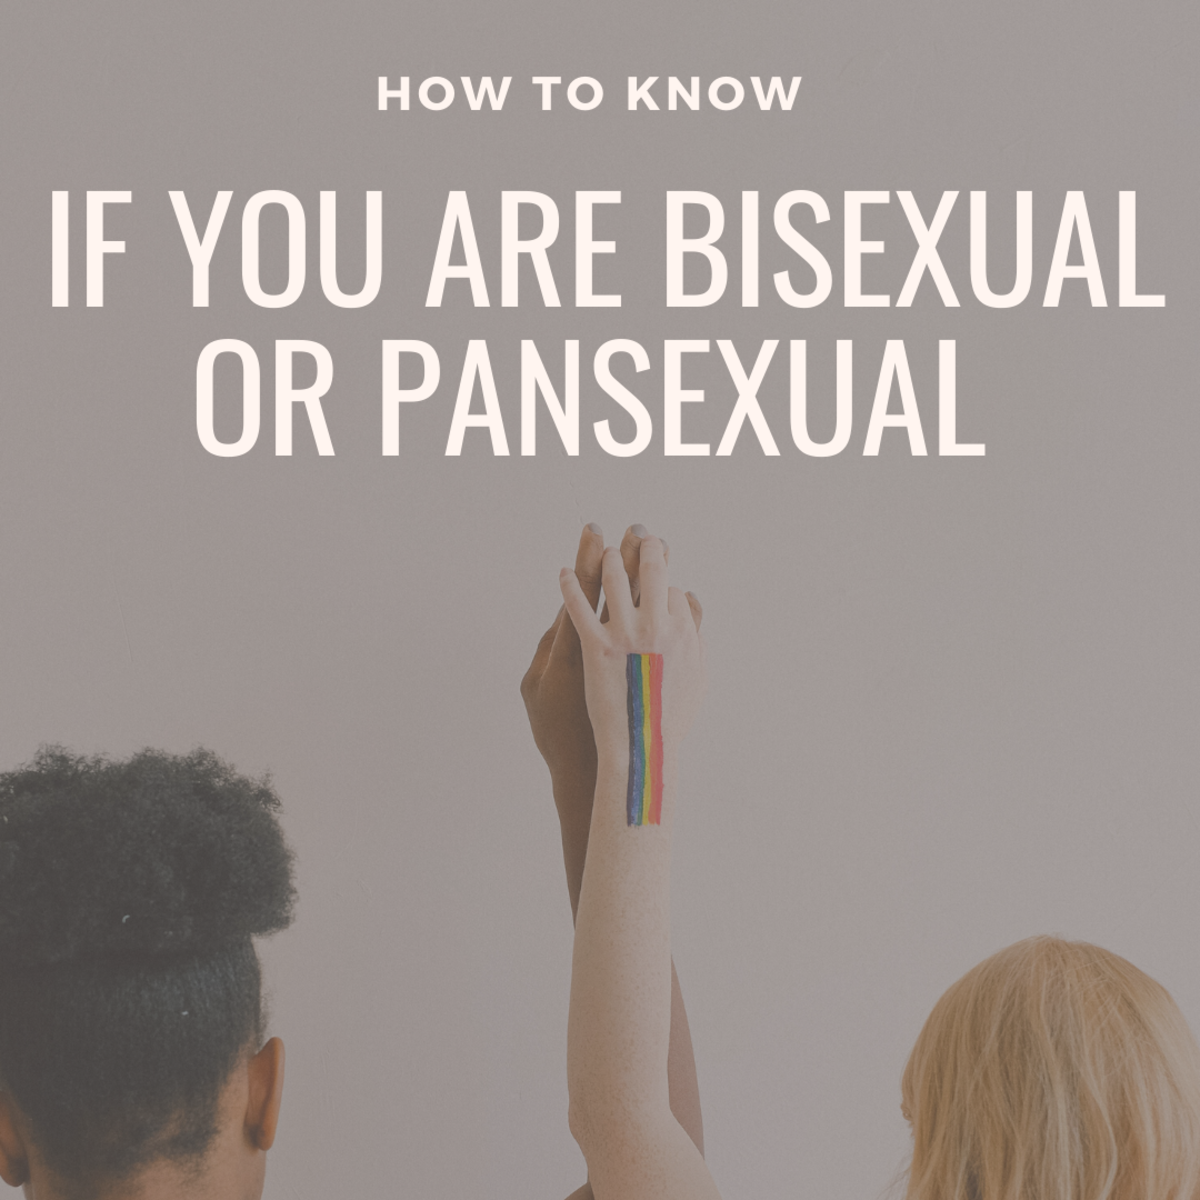 10 Ways to Know If You Are Bisexual or Pansexual